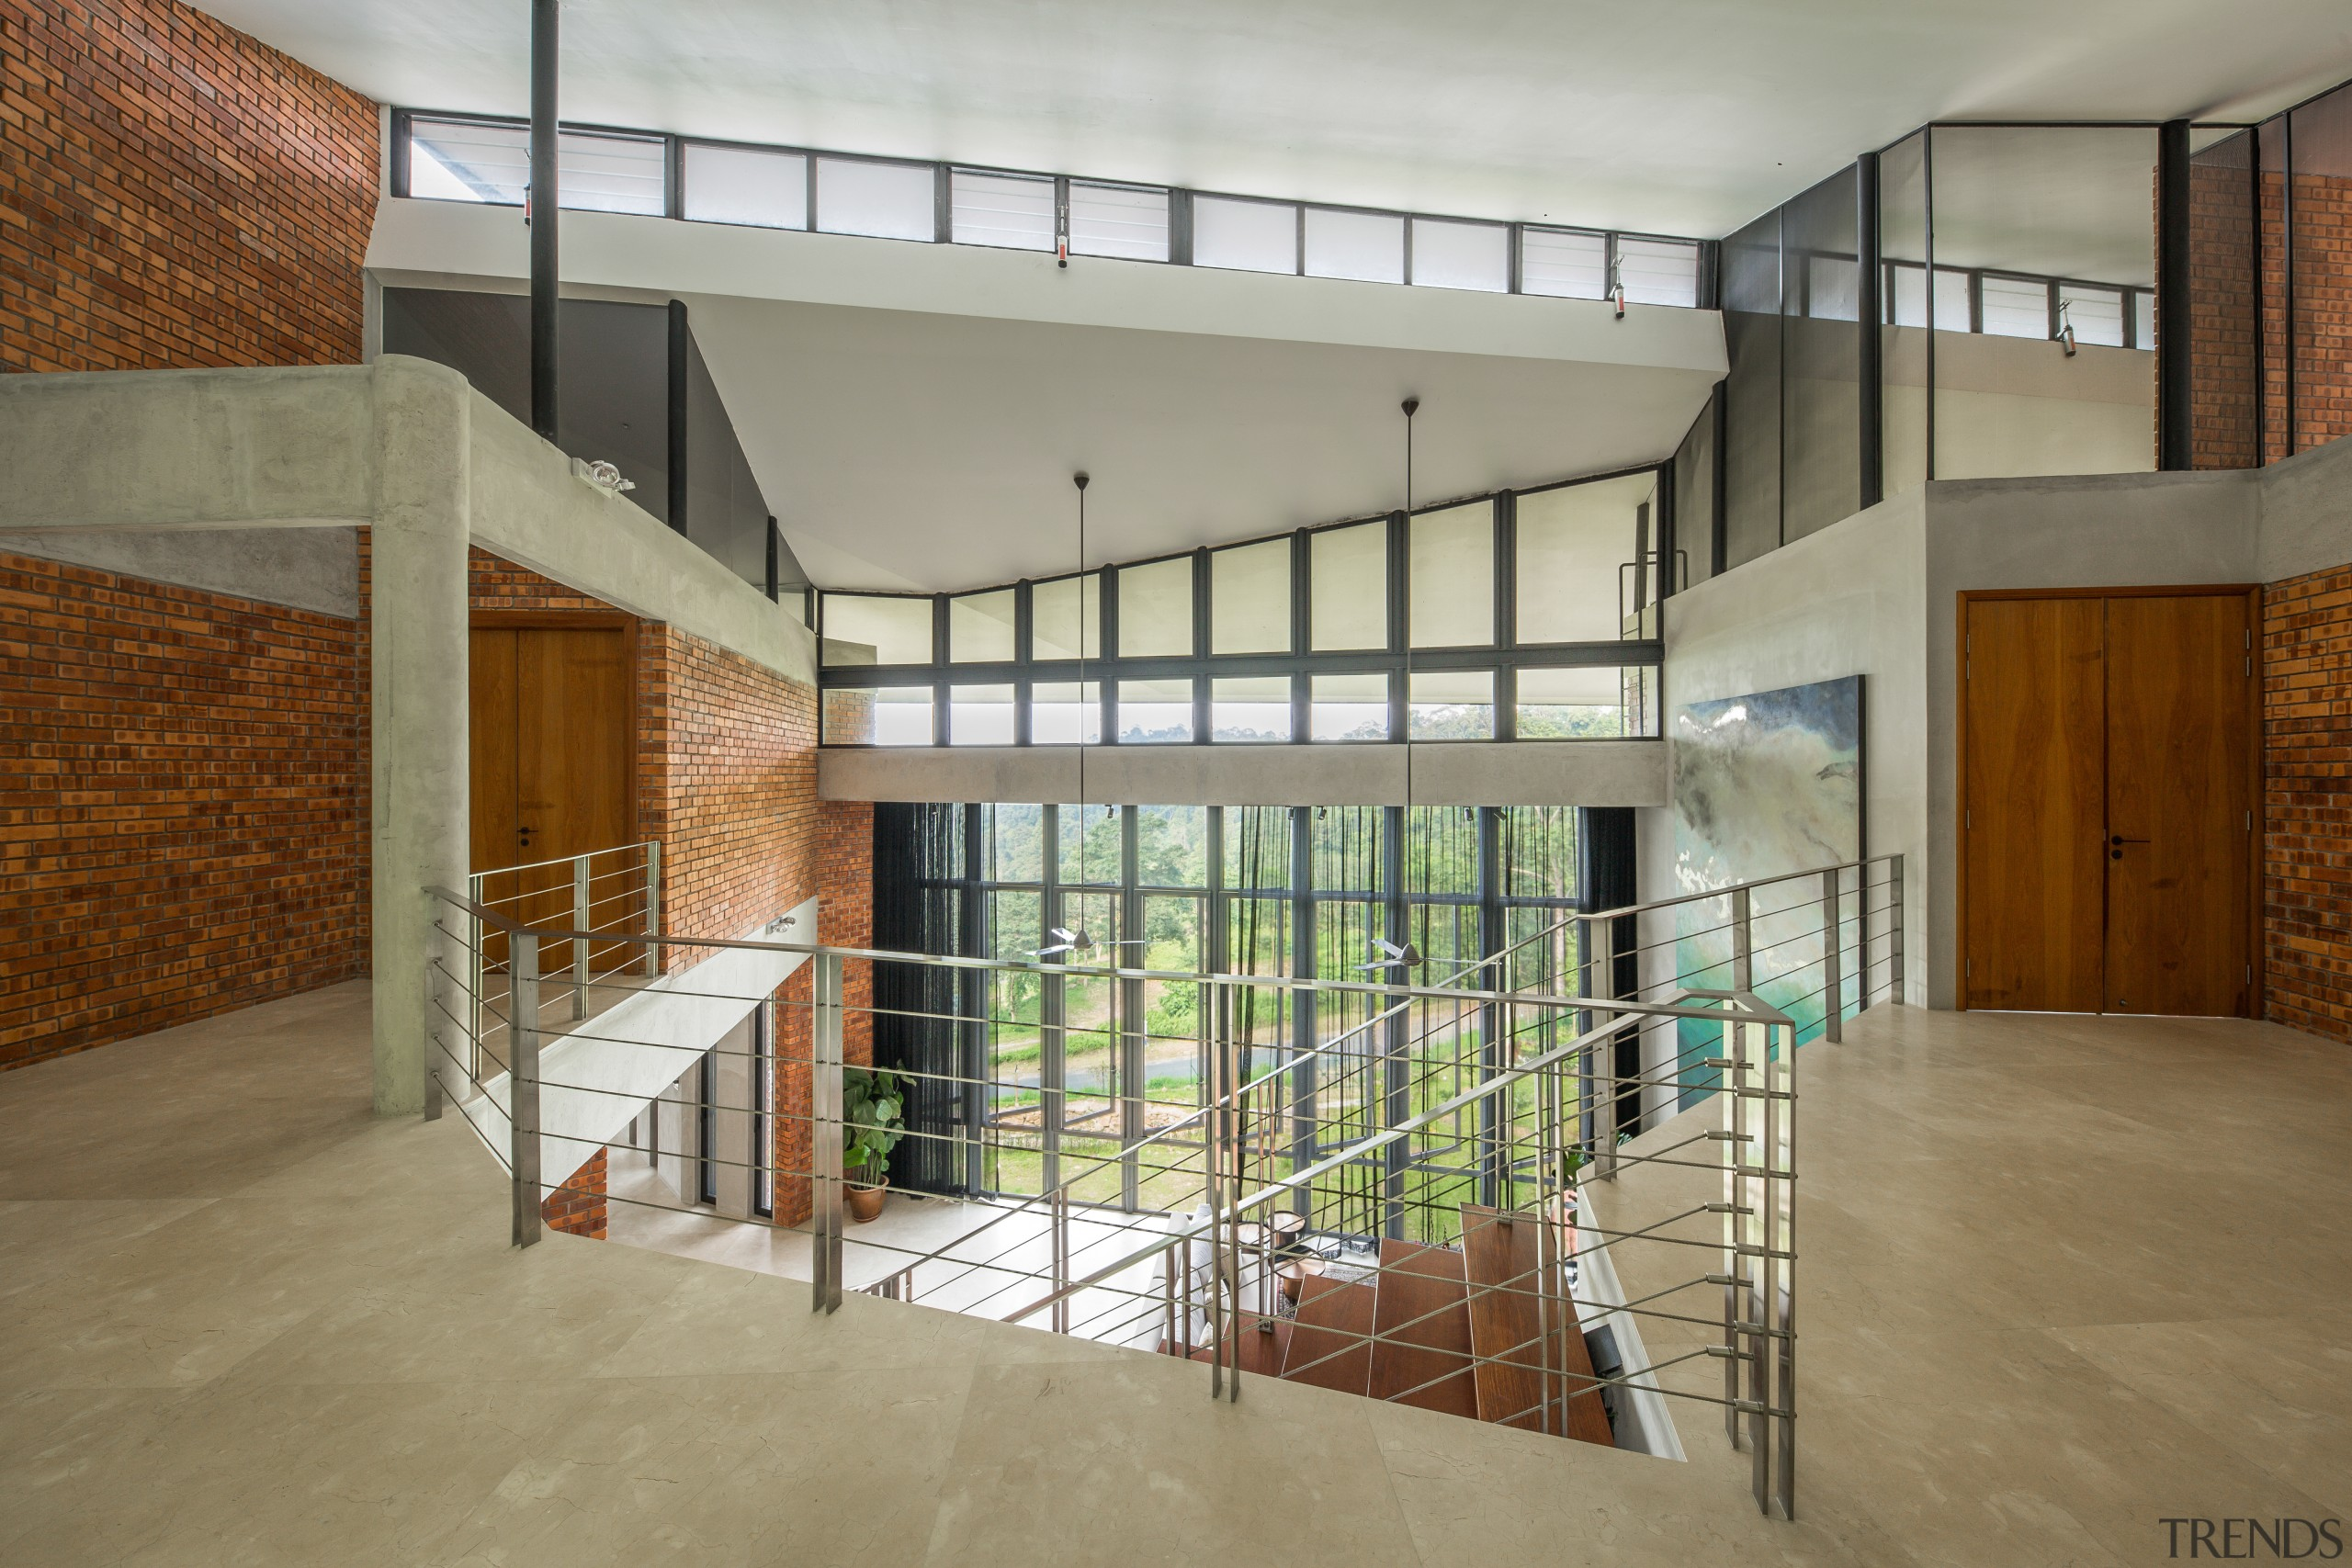 The dramatic entrance to the 5-bedroom home. Light apartment, architecture, building, ceiling, daylighting, design, estate, floor, flooring, hall, handrail, home, house, interior design, loft, property, real estate, residential area, room, stairs, window, gray, brown